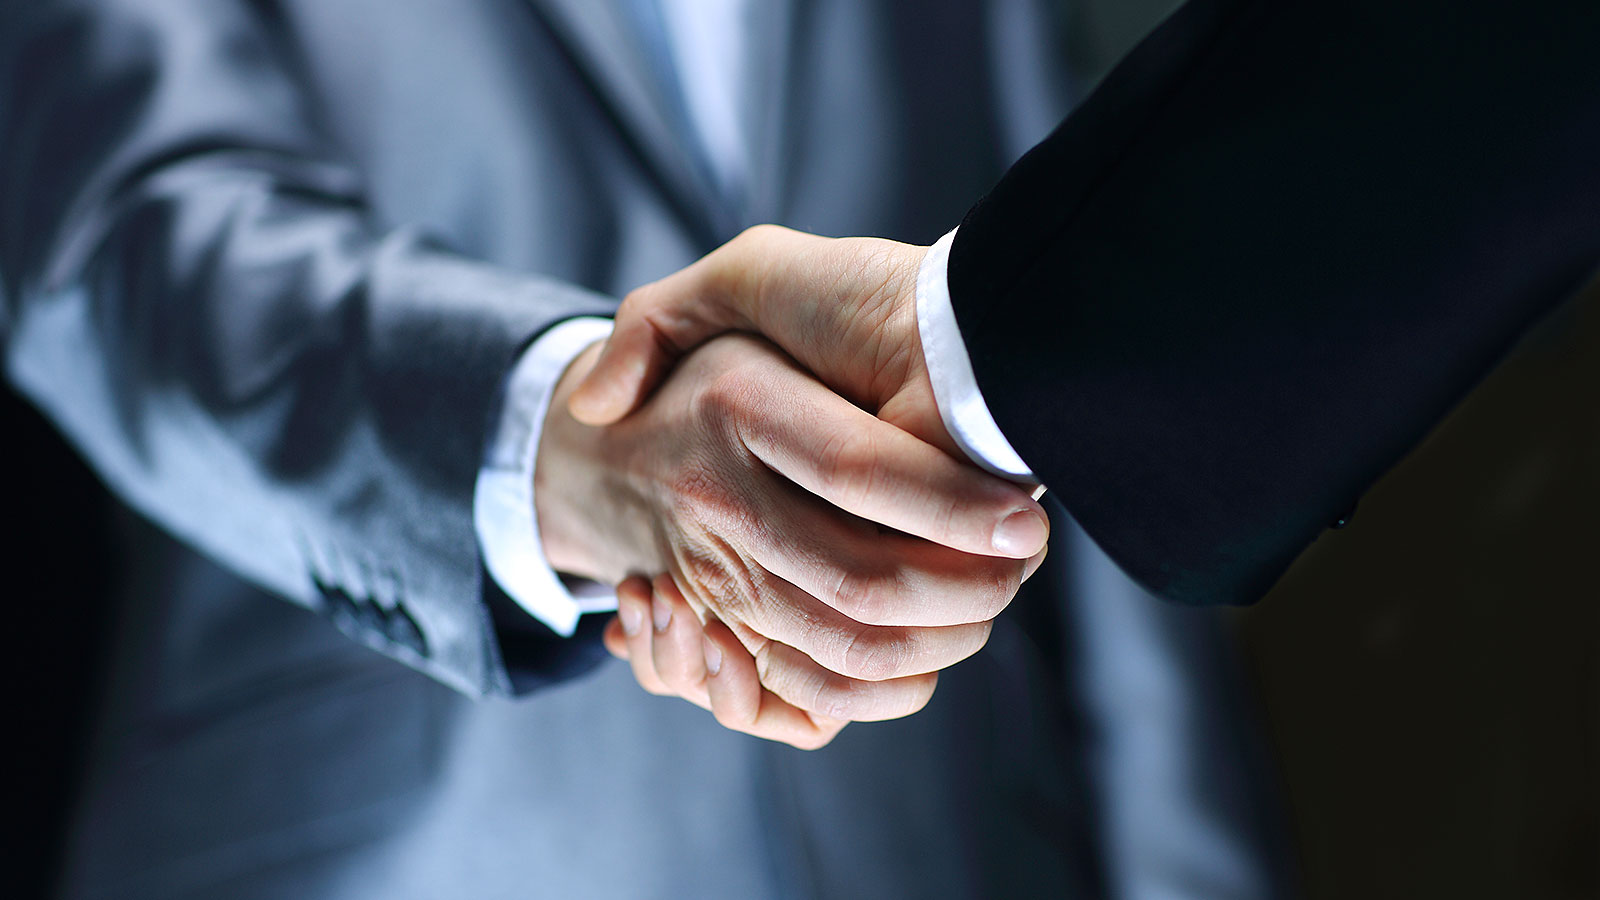 This is the future of the business handshake